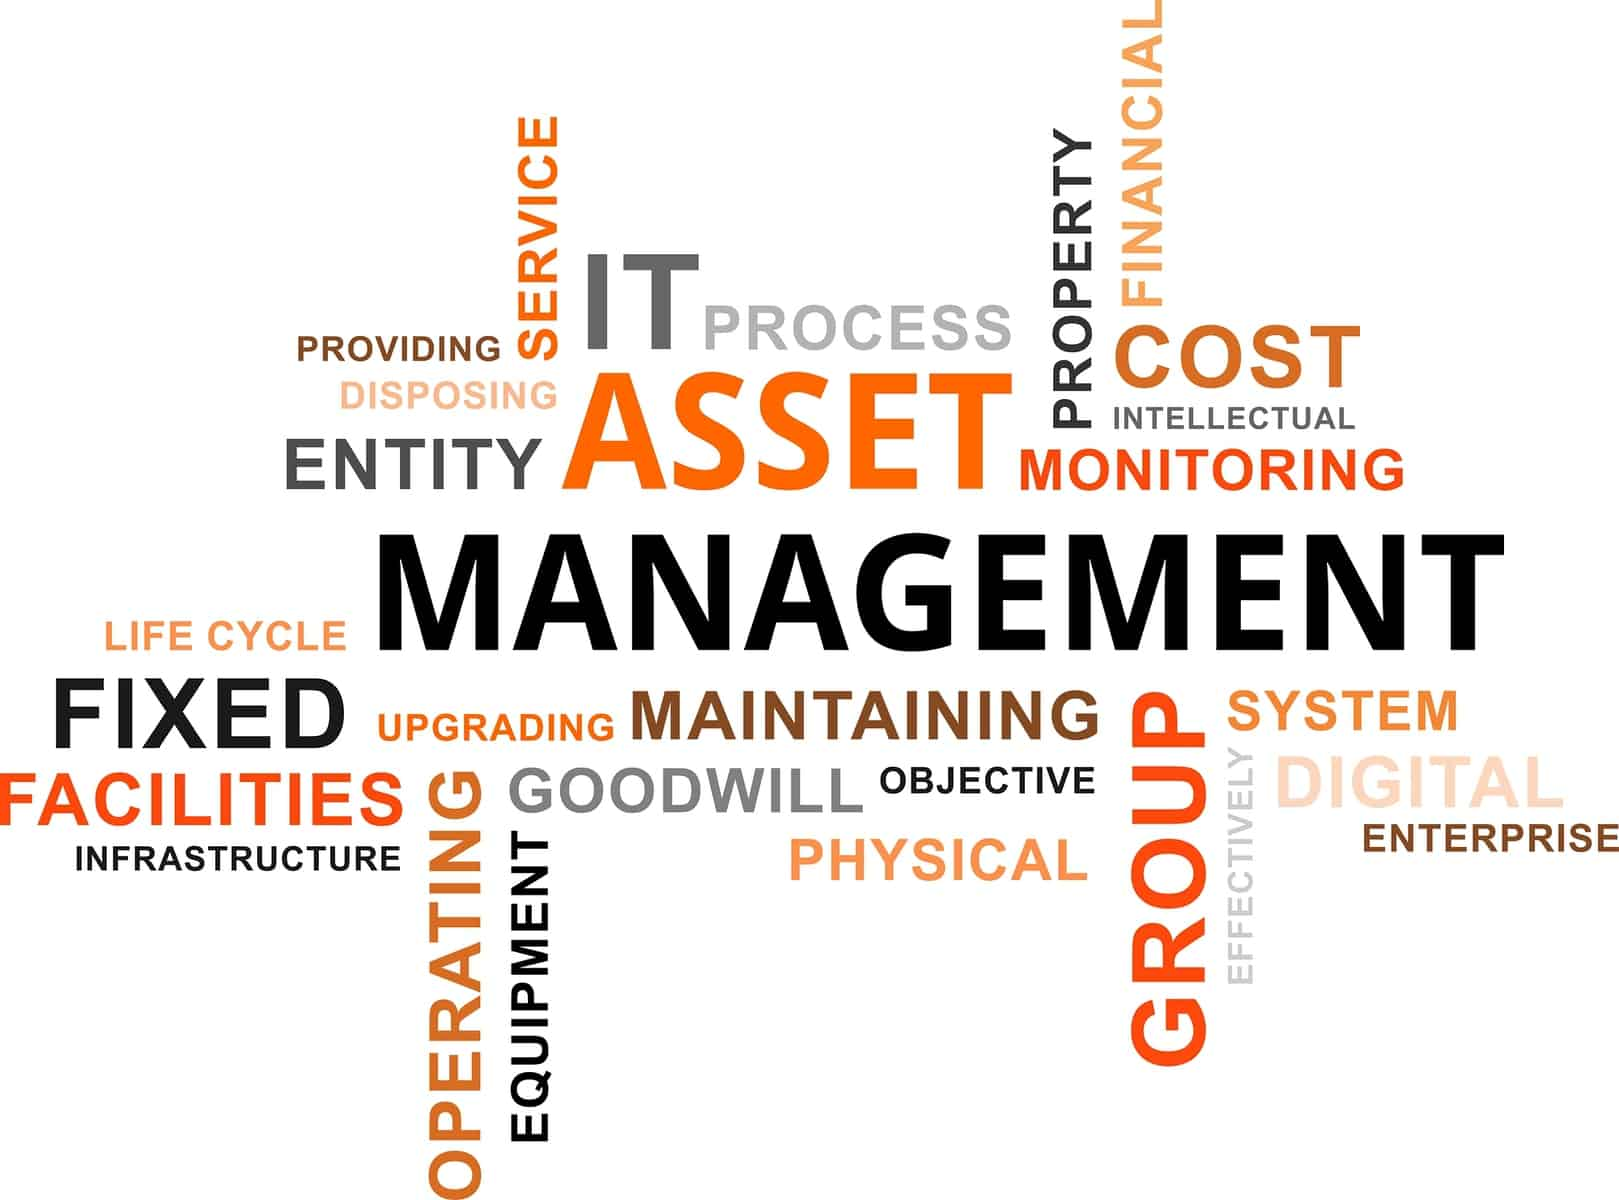 asset management Asset management develops, manages and distributes investment solutions for major asset classes our clients include global financial intermediaries, sovereign wealth funds, central banks.